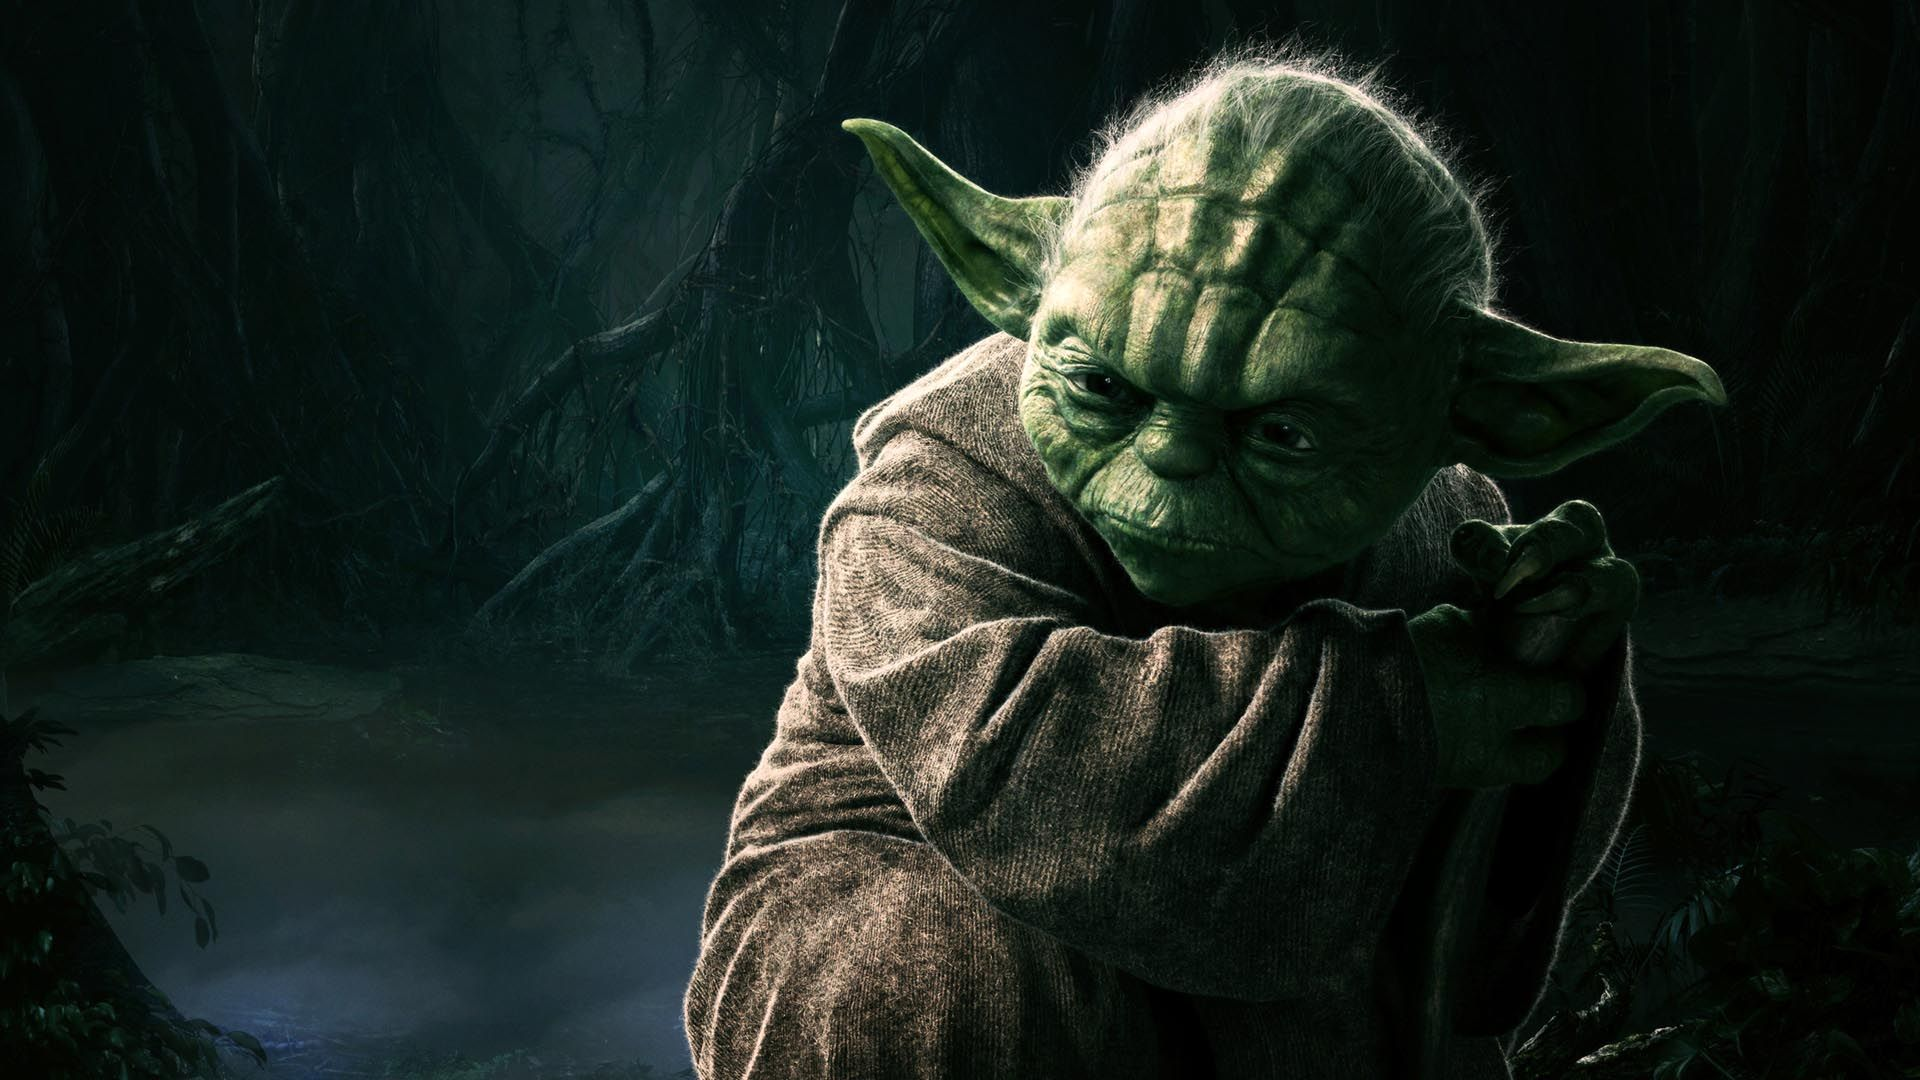 Star Wars Yoda Wallpapers Top Free Star Wars Yoda Backgrounds Wallpaperaccess